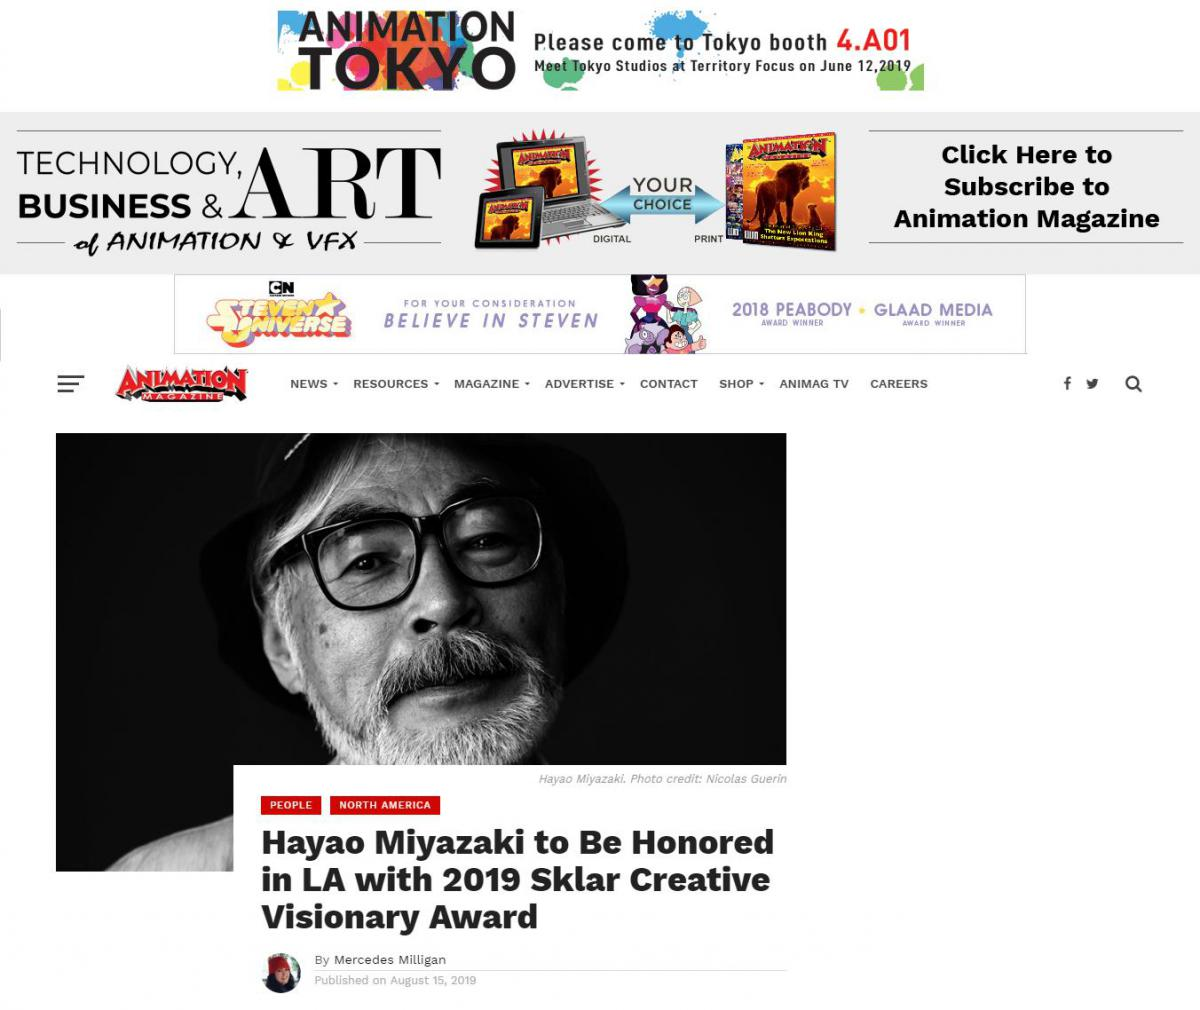 Animation Magazine: Hayao Miyazaki to Be Honored in LA with 2019 Sklar Creative Visionary Award